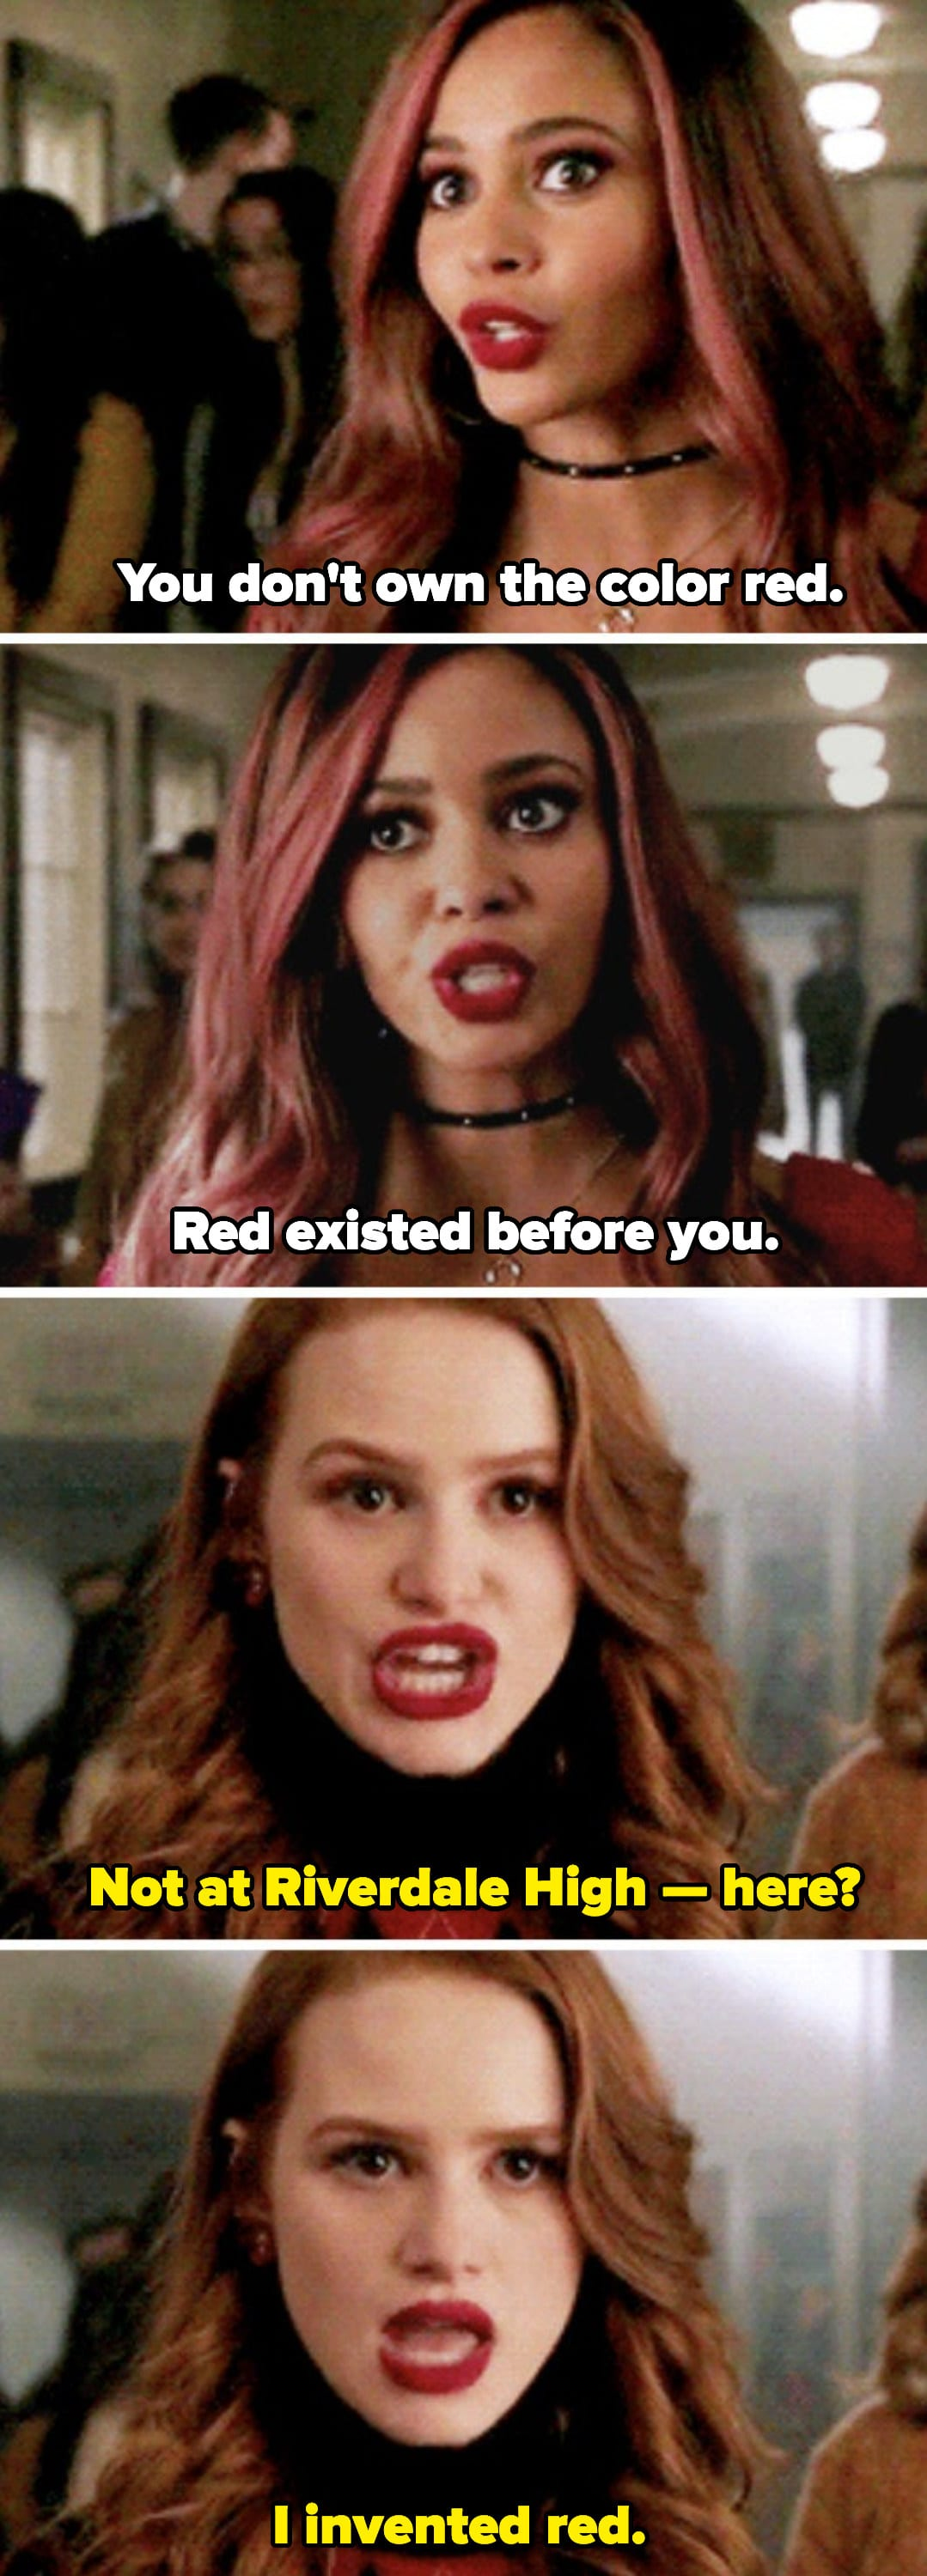 Toni and Cheryl arguing in the school hallway who invented the color red